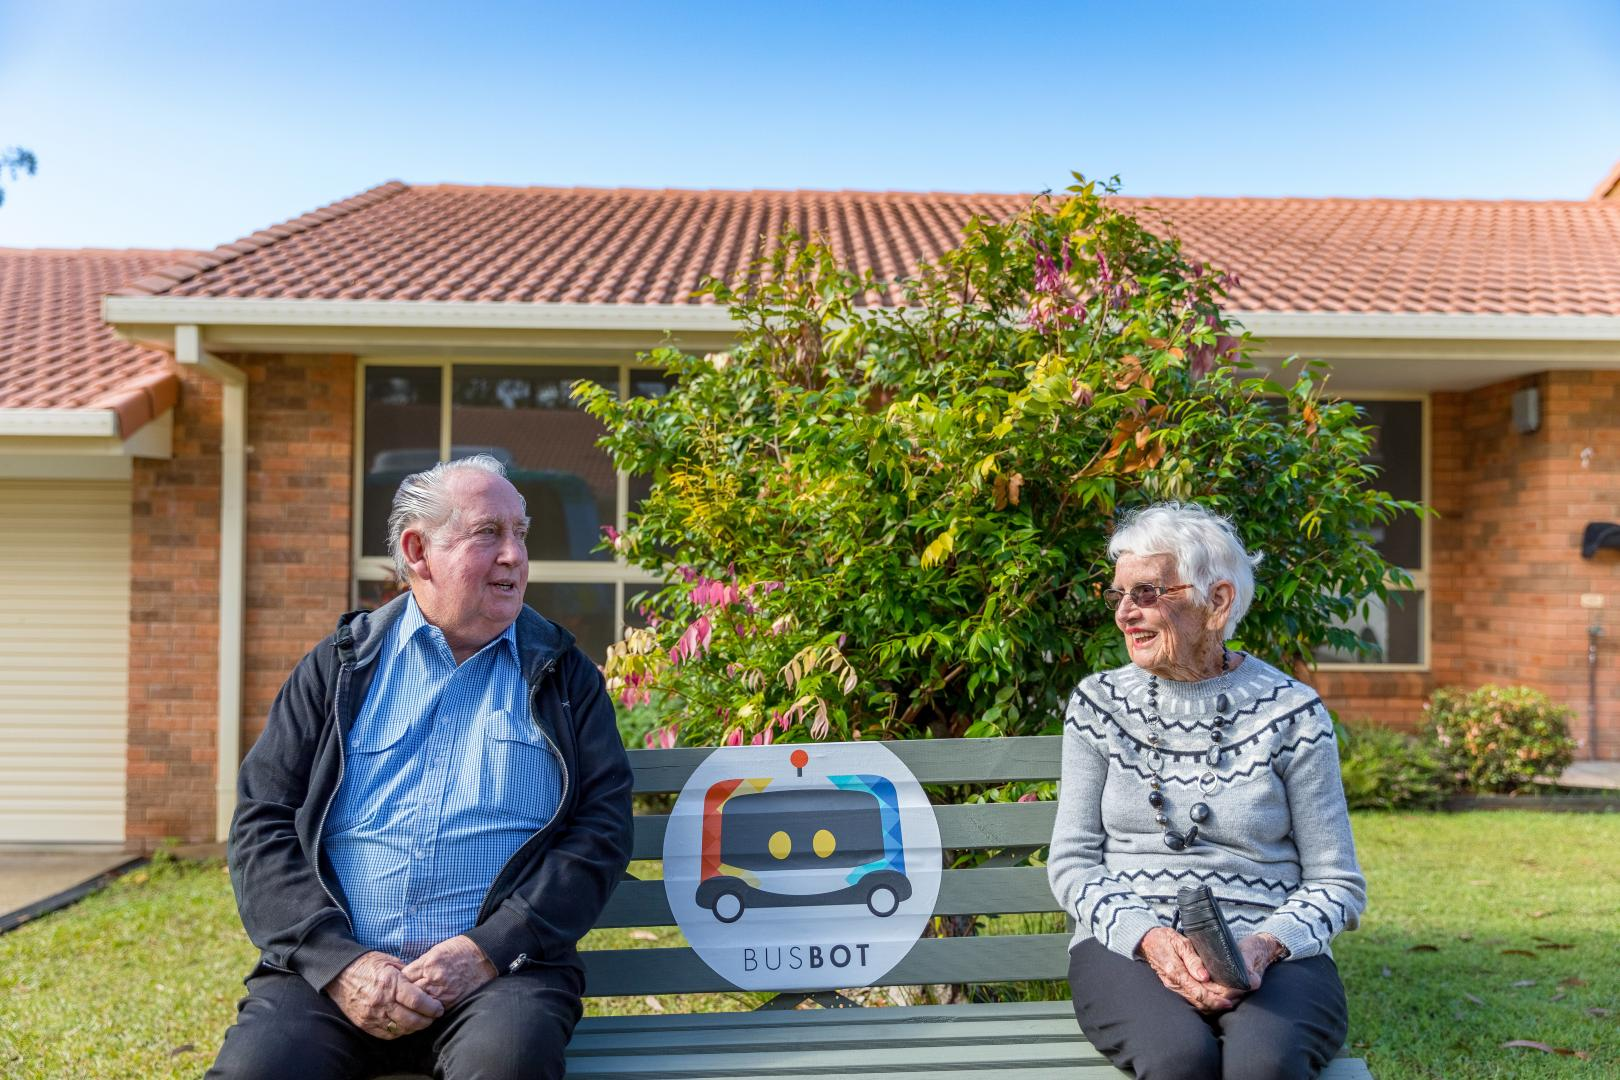 Residents Margaret and Keith enjoying a the sunshine at the BusBot bus stop. Photo: Mitchell Franzi